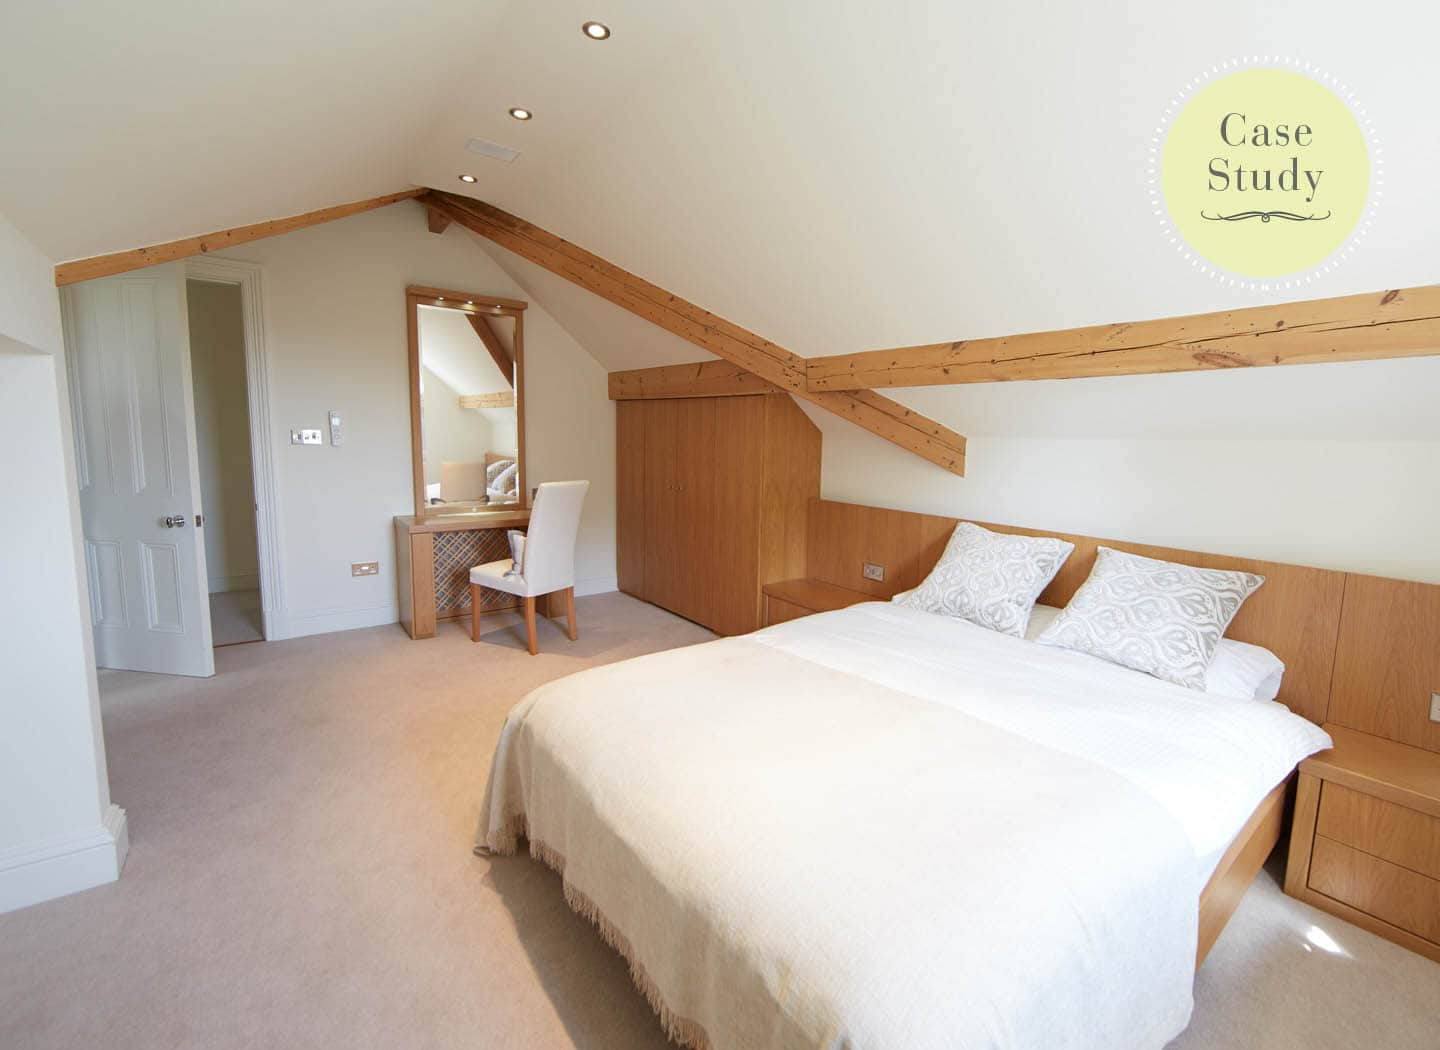 Case study showing bedroom in loft conversion